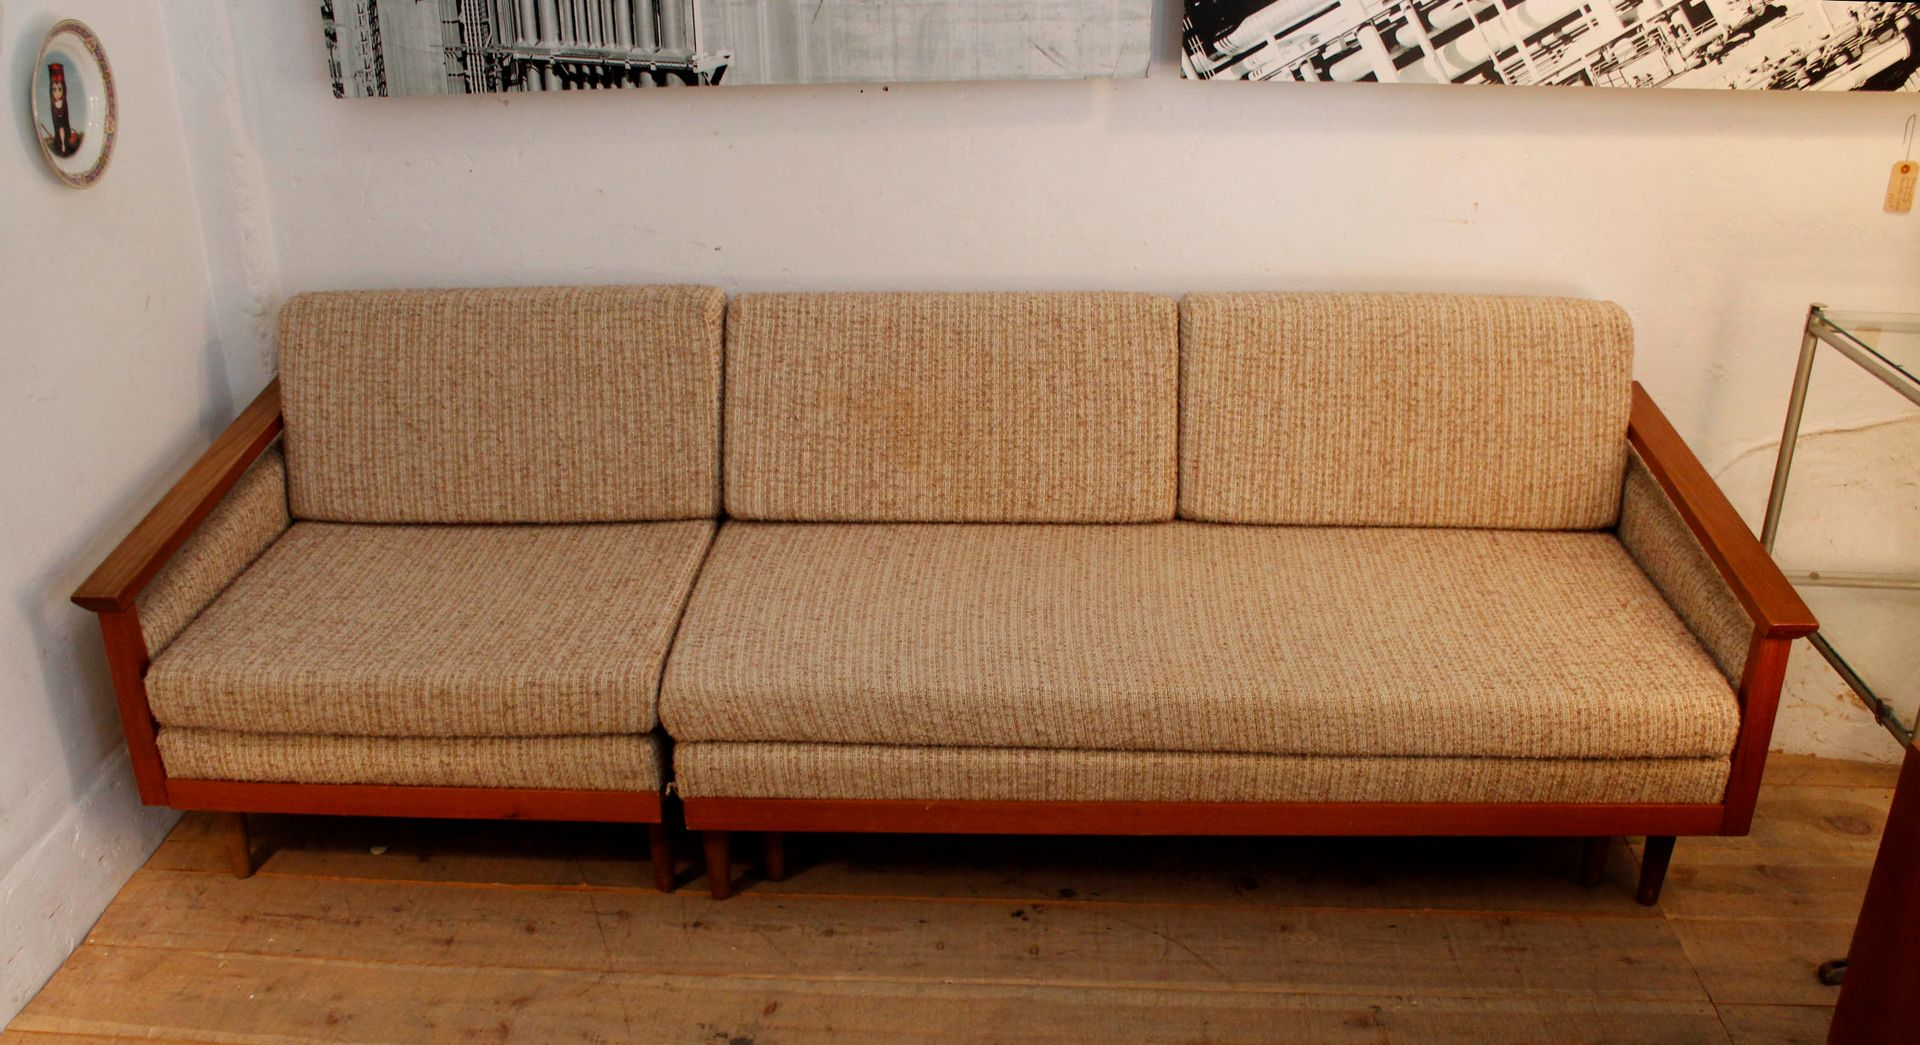 Vintage swedish four seater sofa with chaise longue for for 2 seater chaise sofa for sale